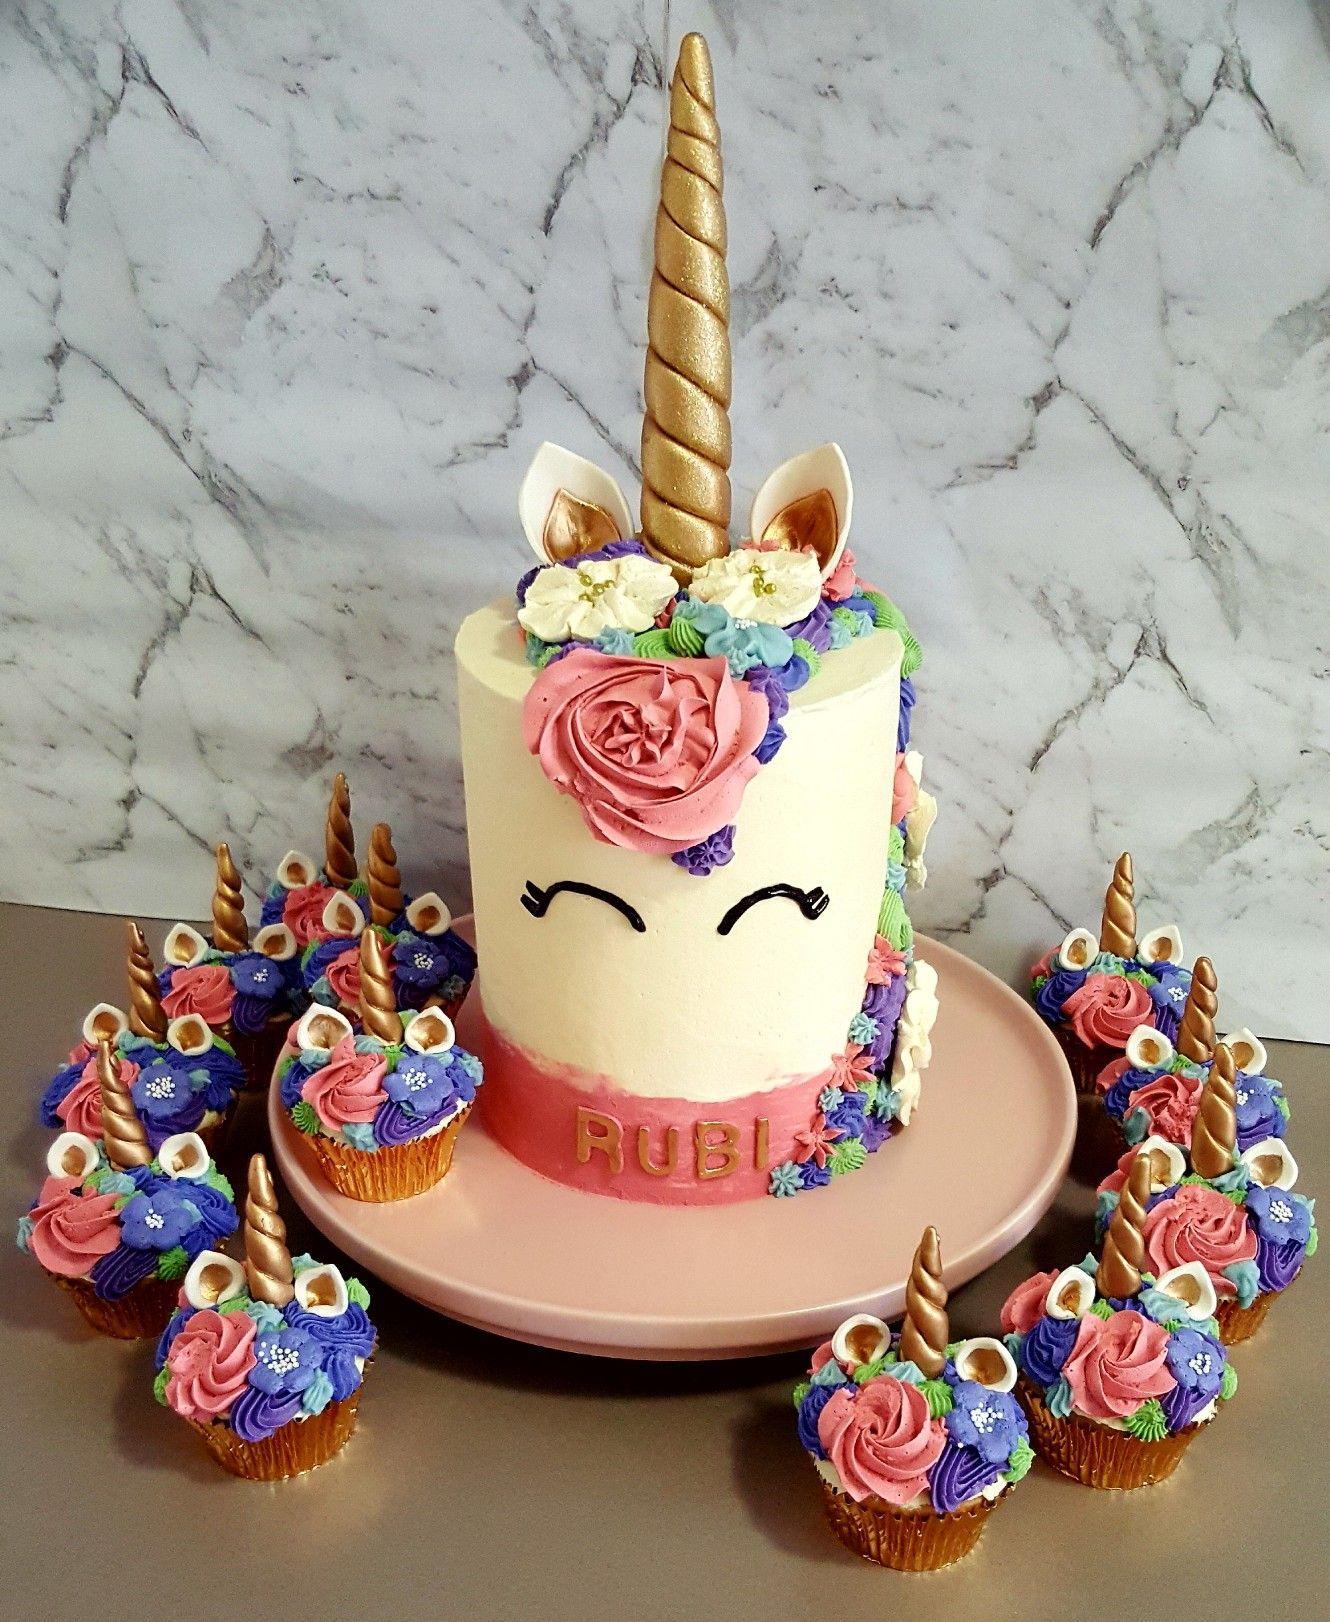 Whimsical Unicorn Cake And Pretty Little Cupcakes To Match June